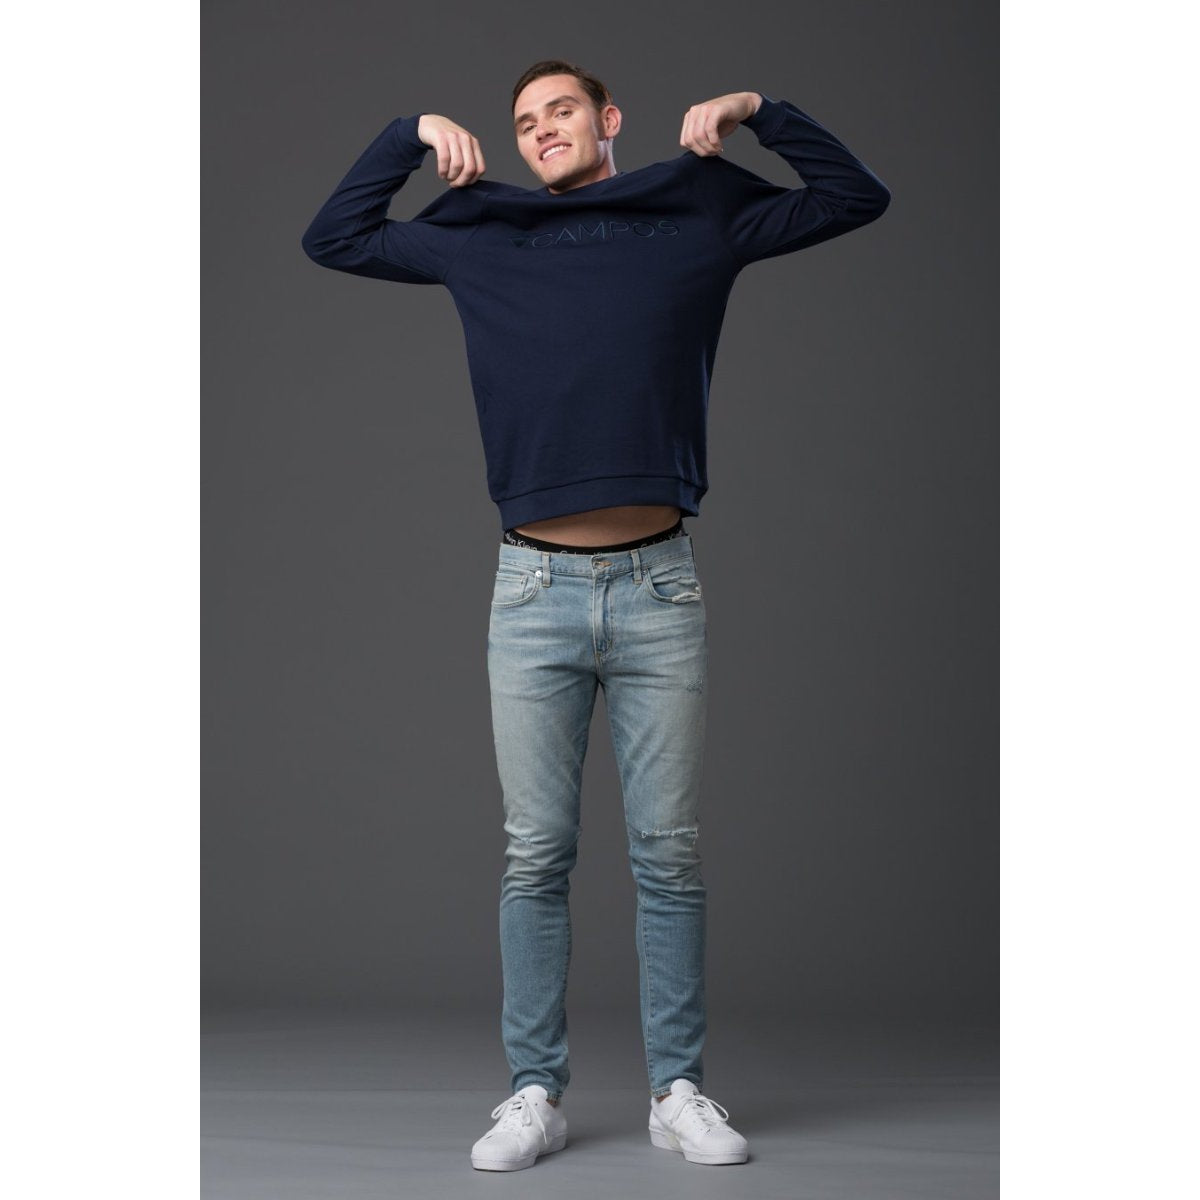 Mens Sweatshirt Navy